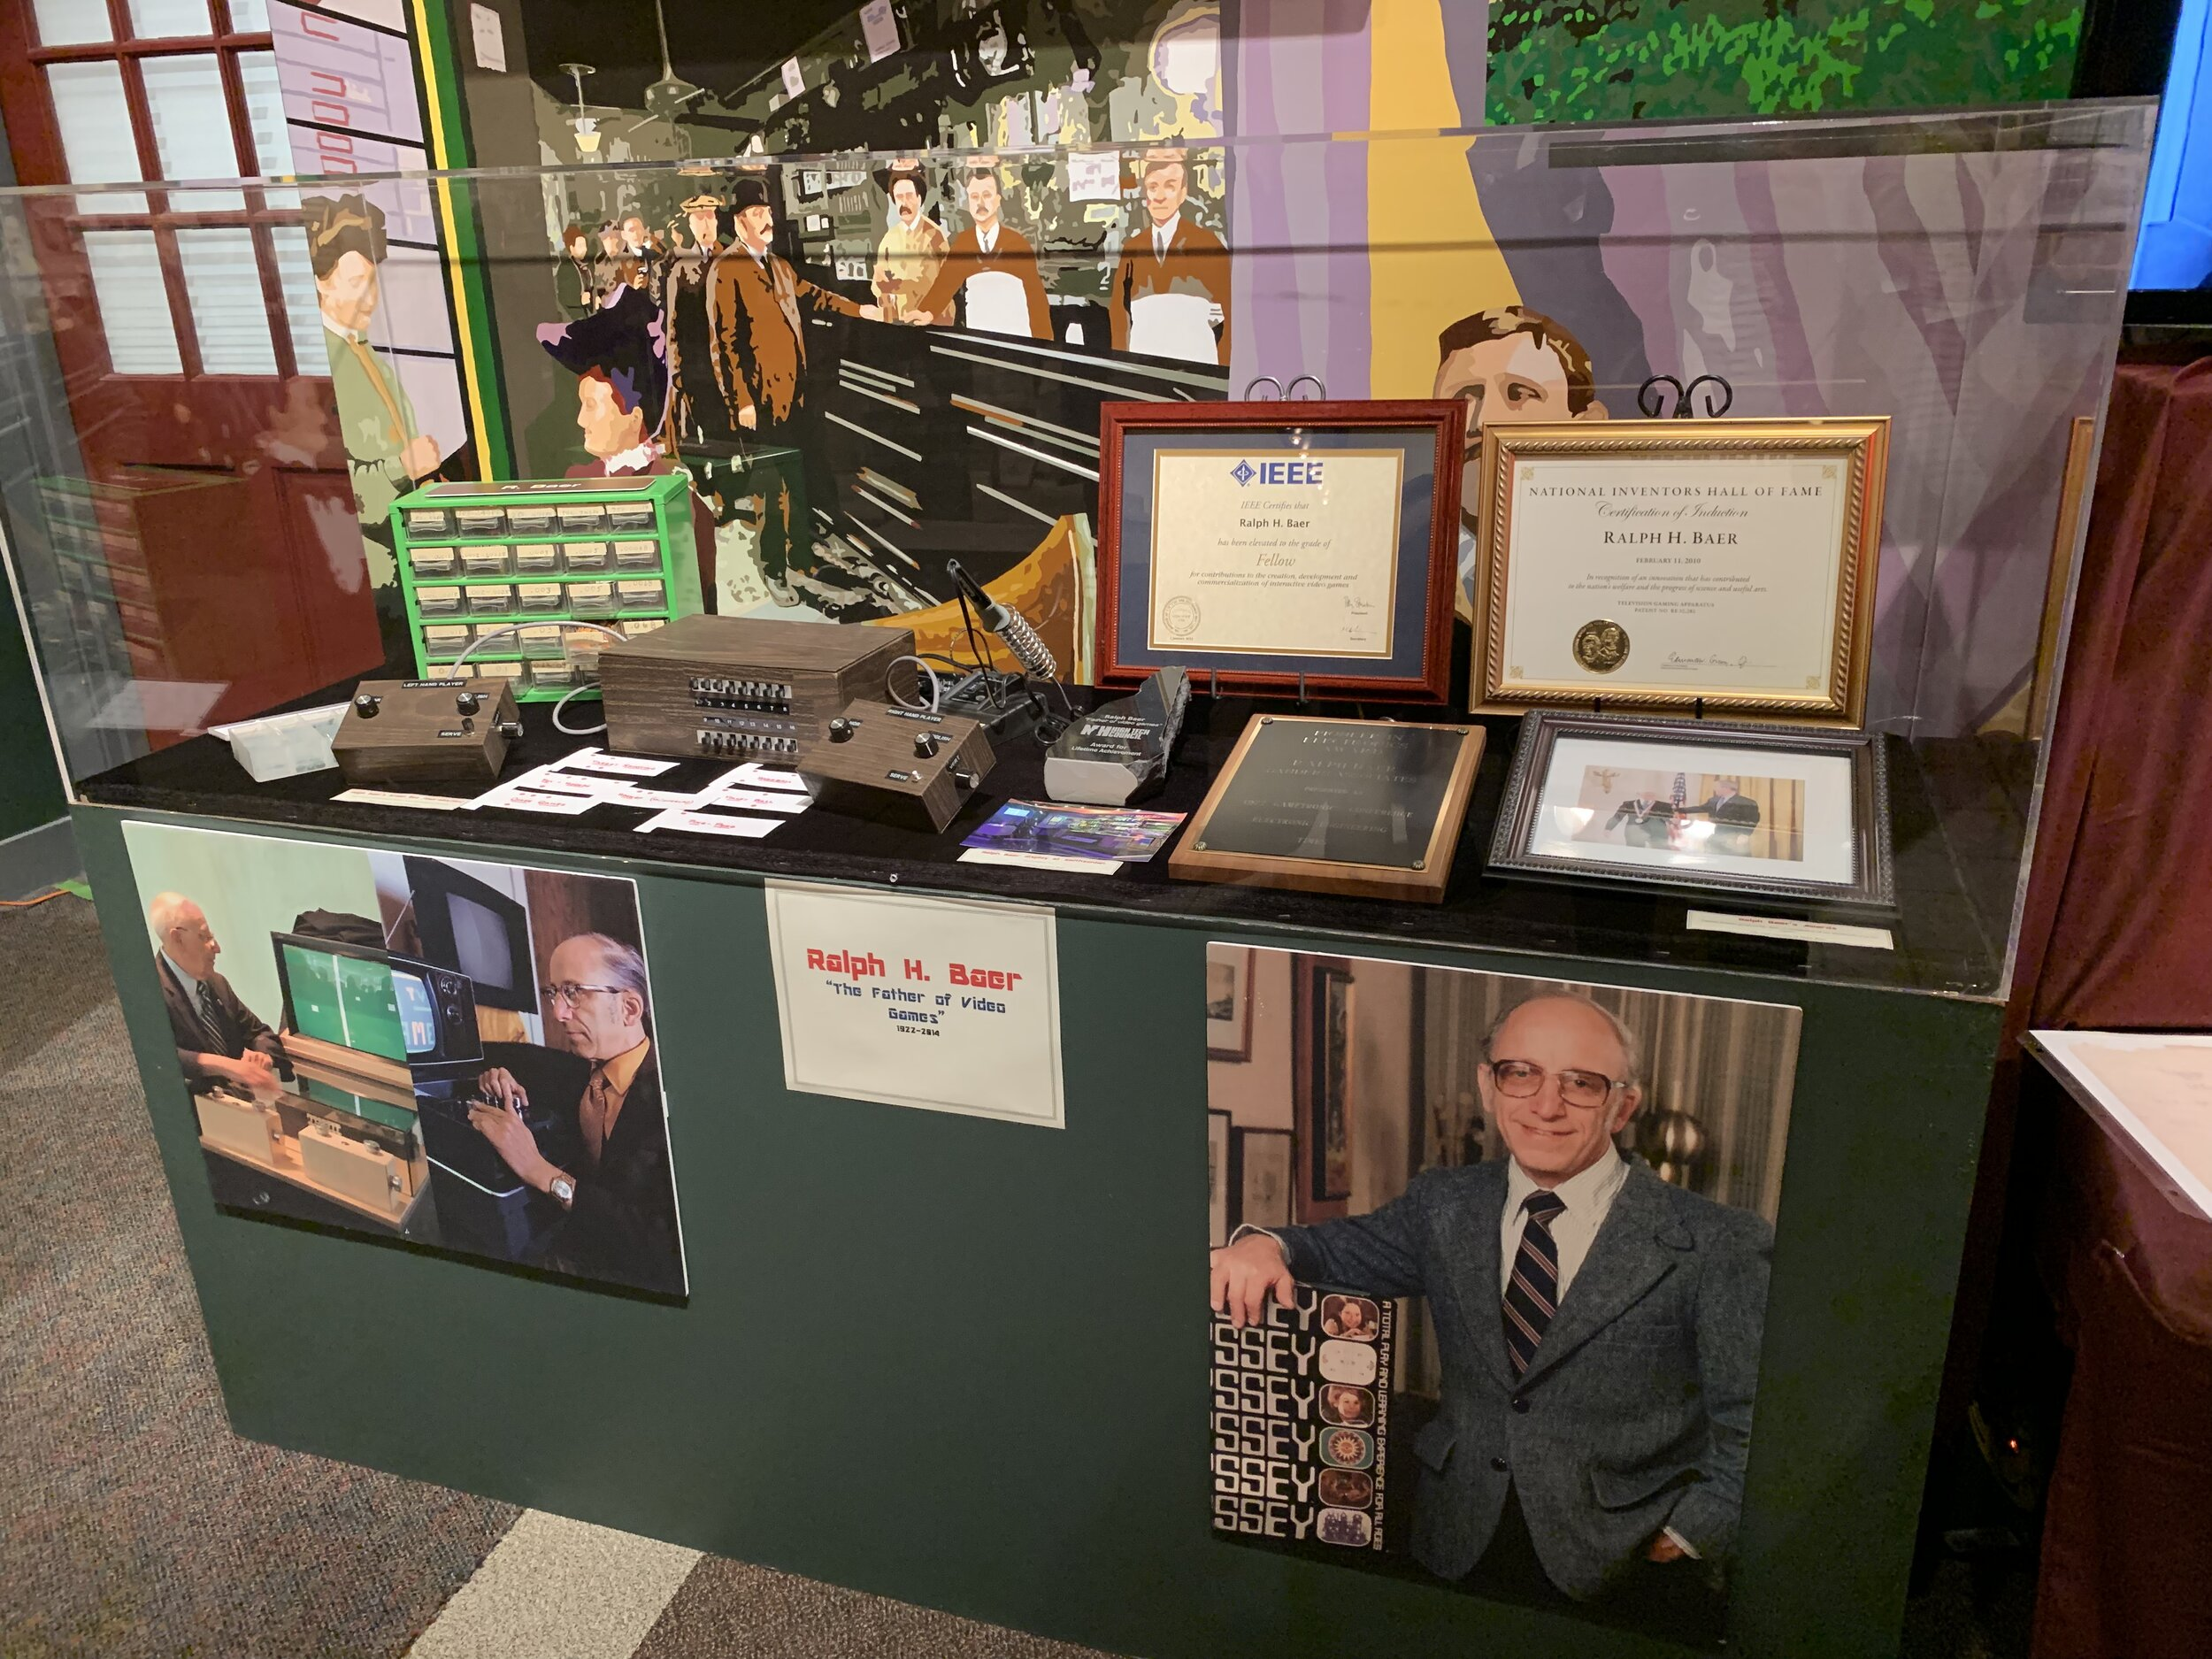 Ralph H. Baer Exhibit at The Millyard Museum